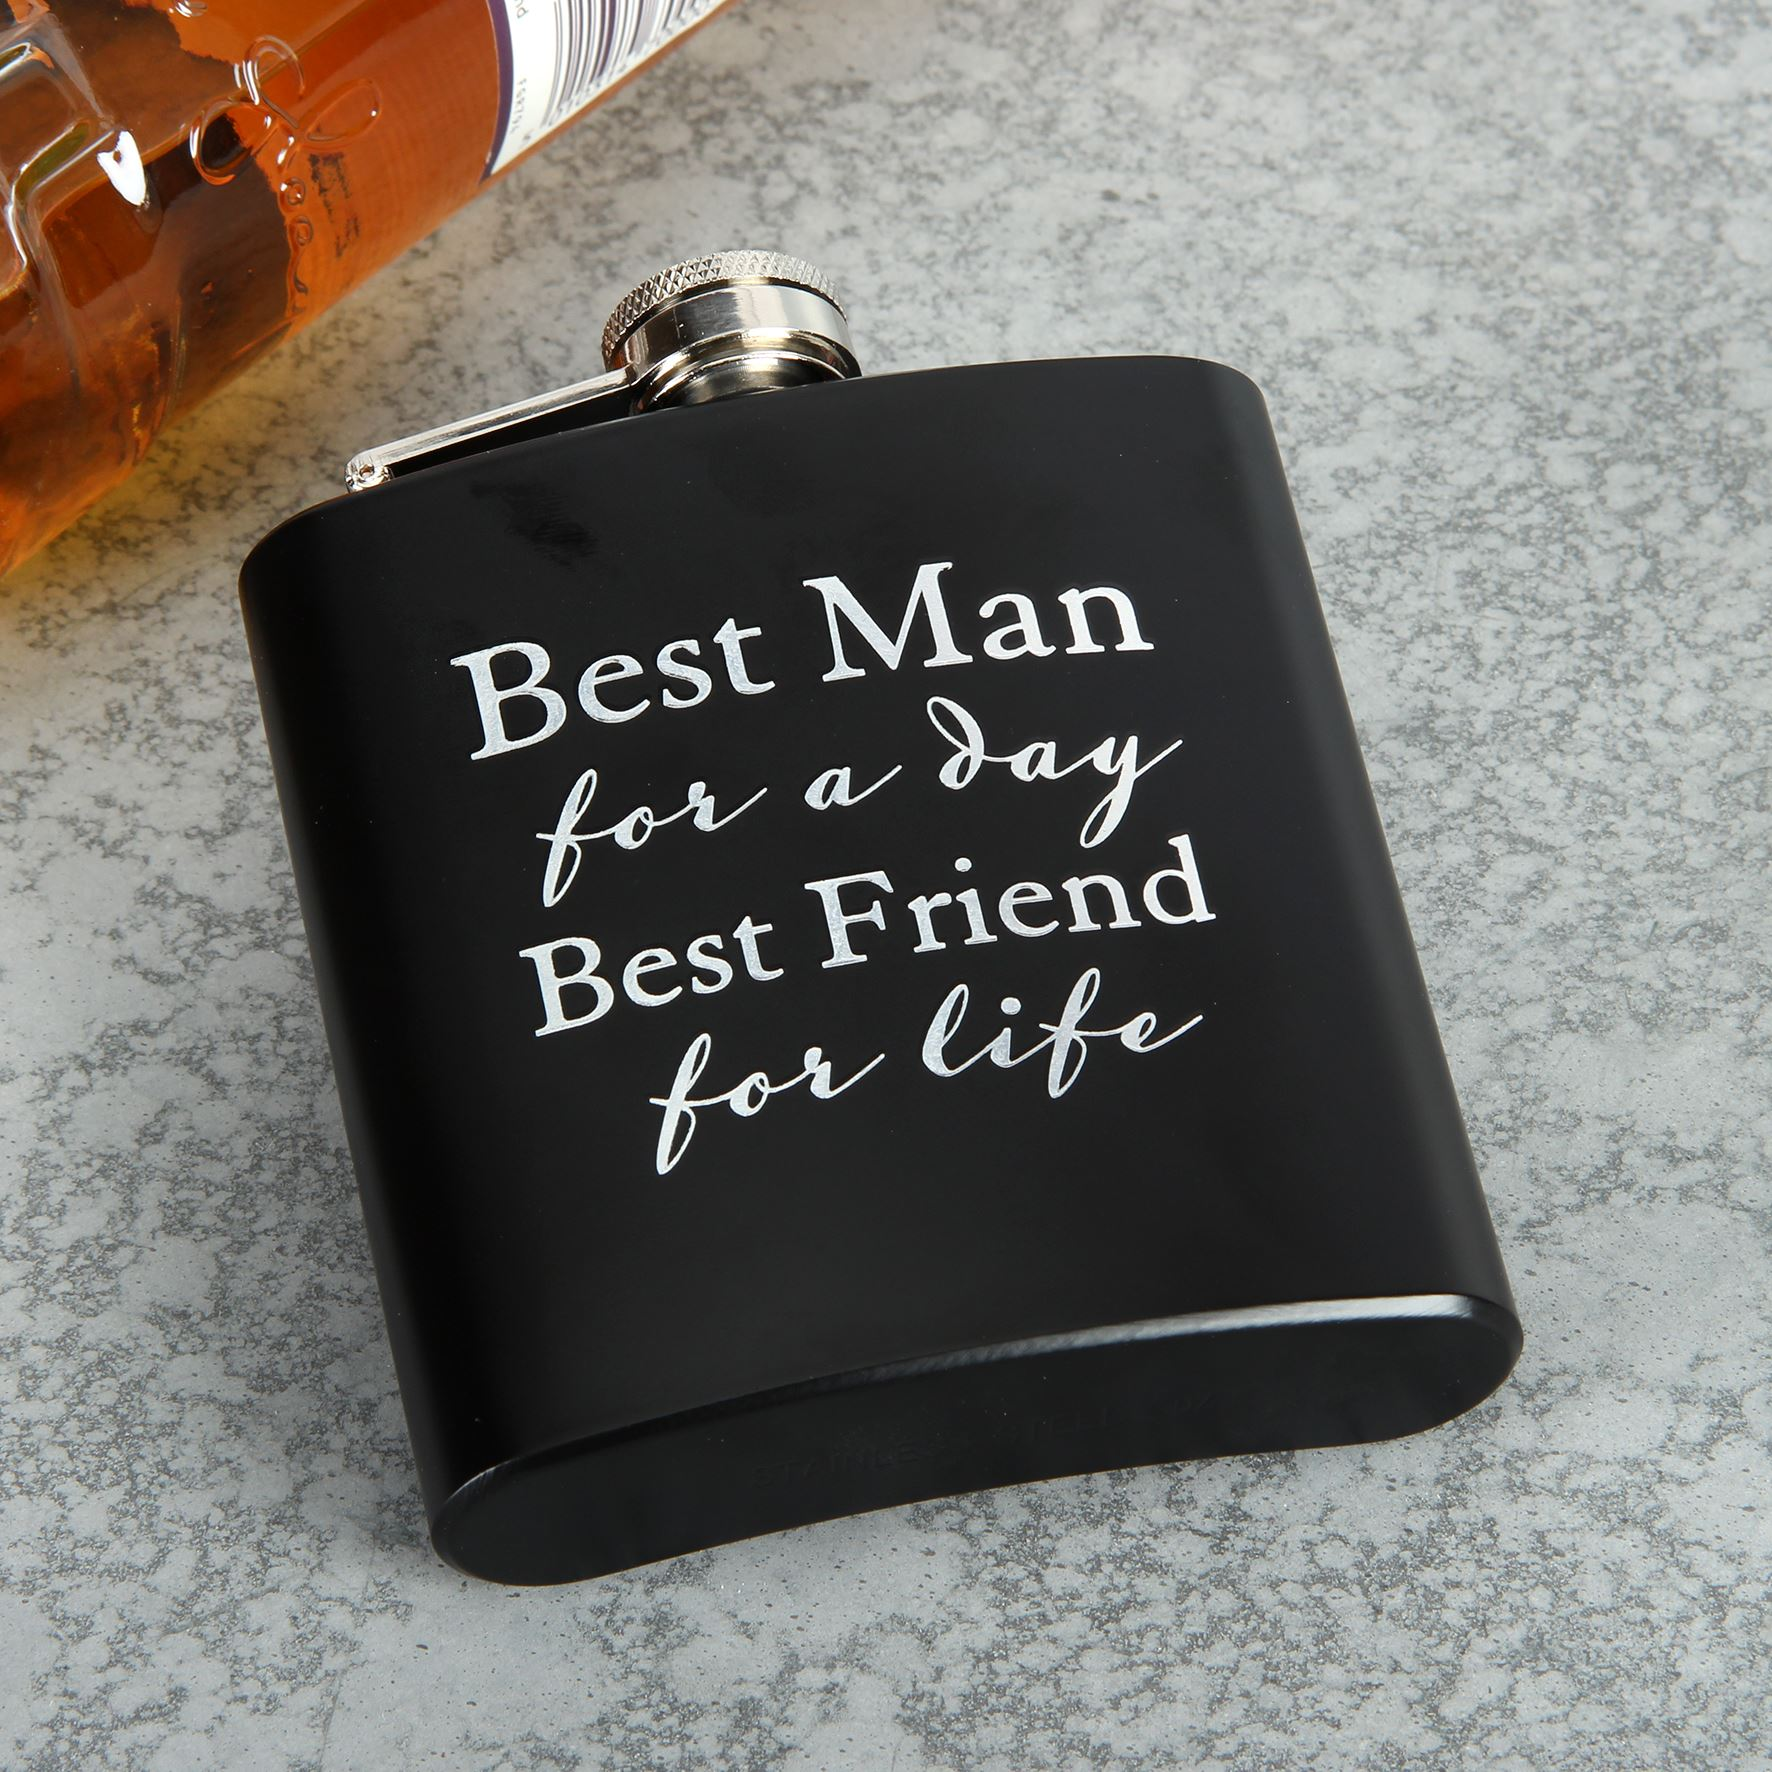 Amore 6Oz Hip Flask - Best Man For A Day....